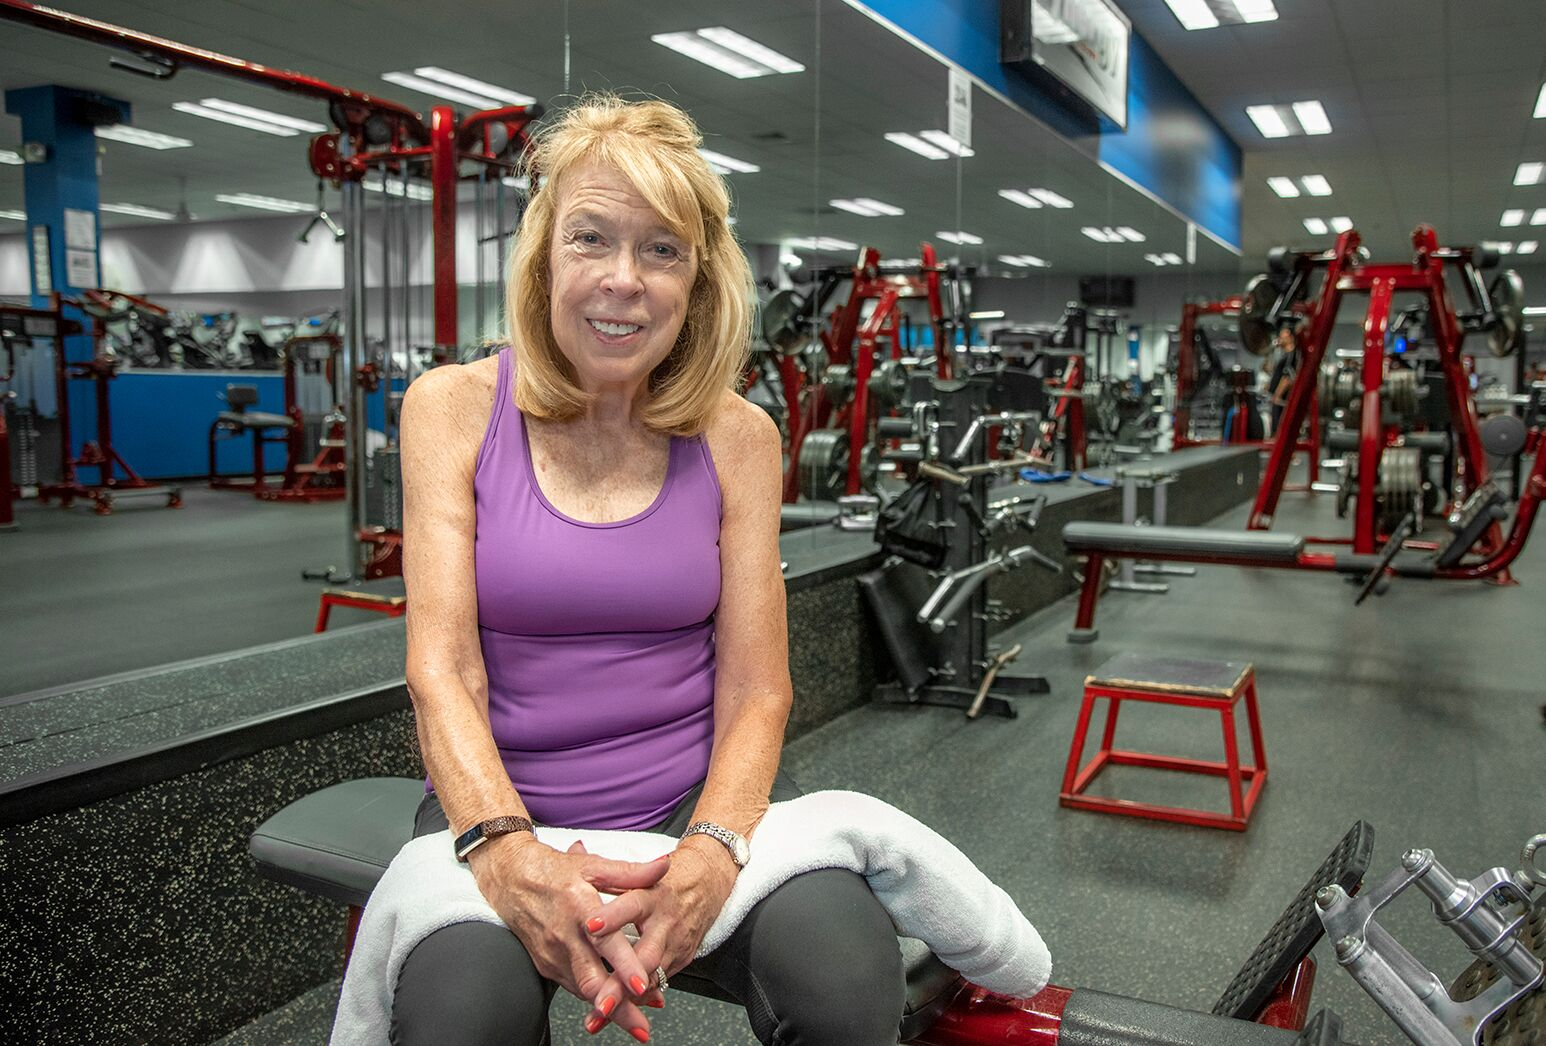 Blonde haired woman in purple tank top sits on gym equipment.